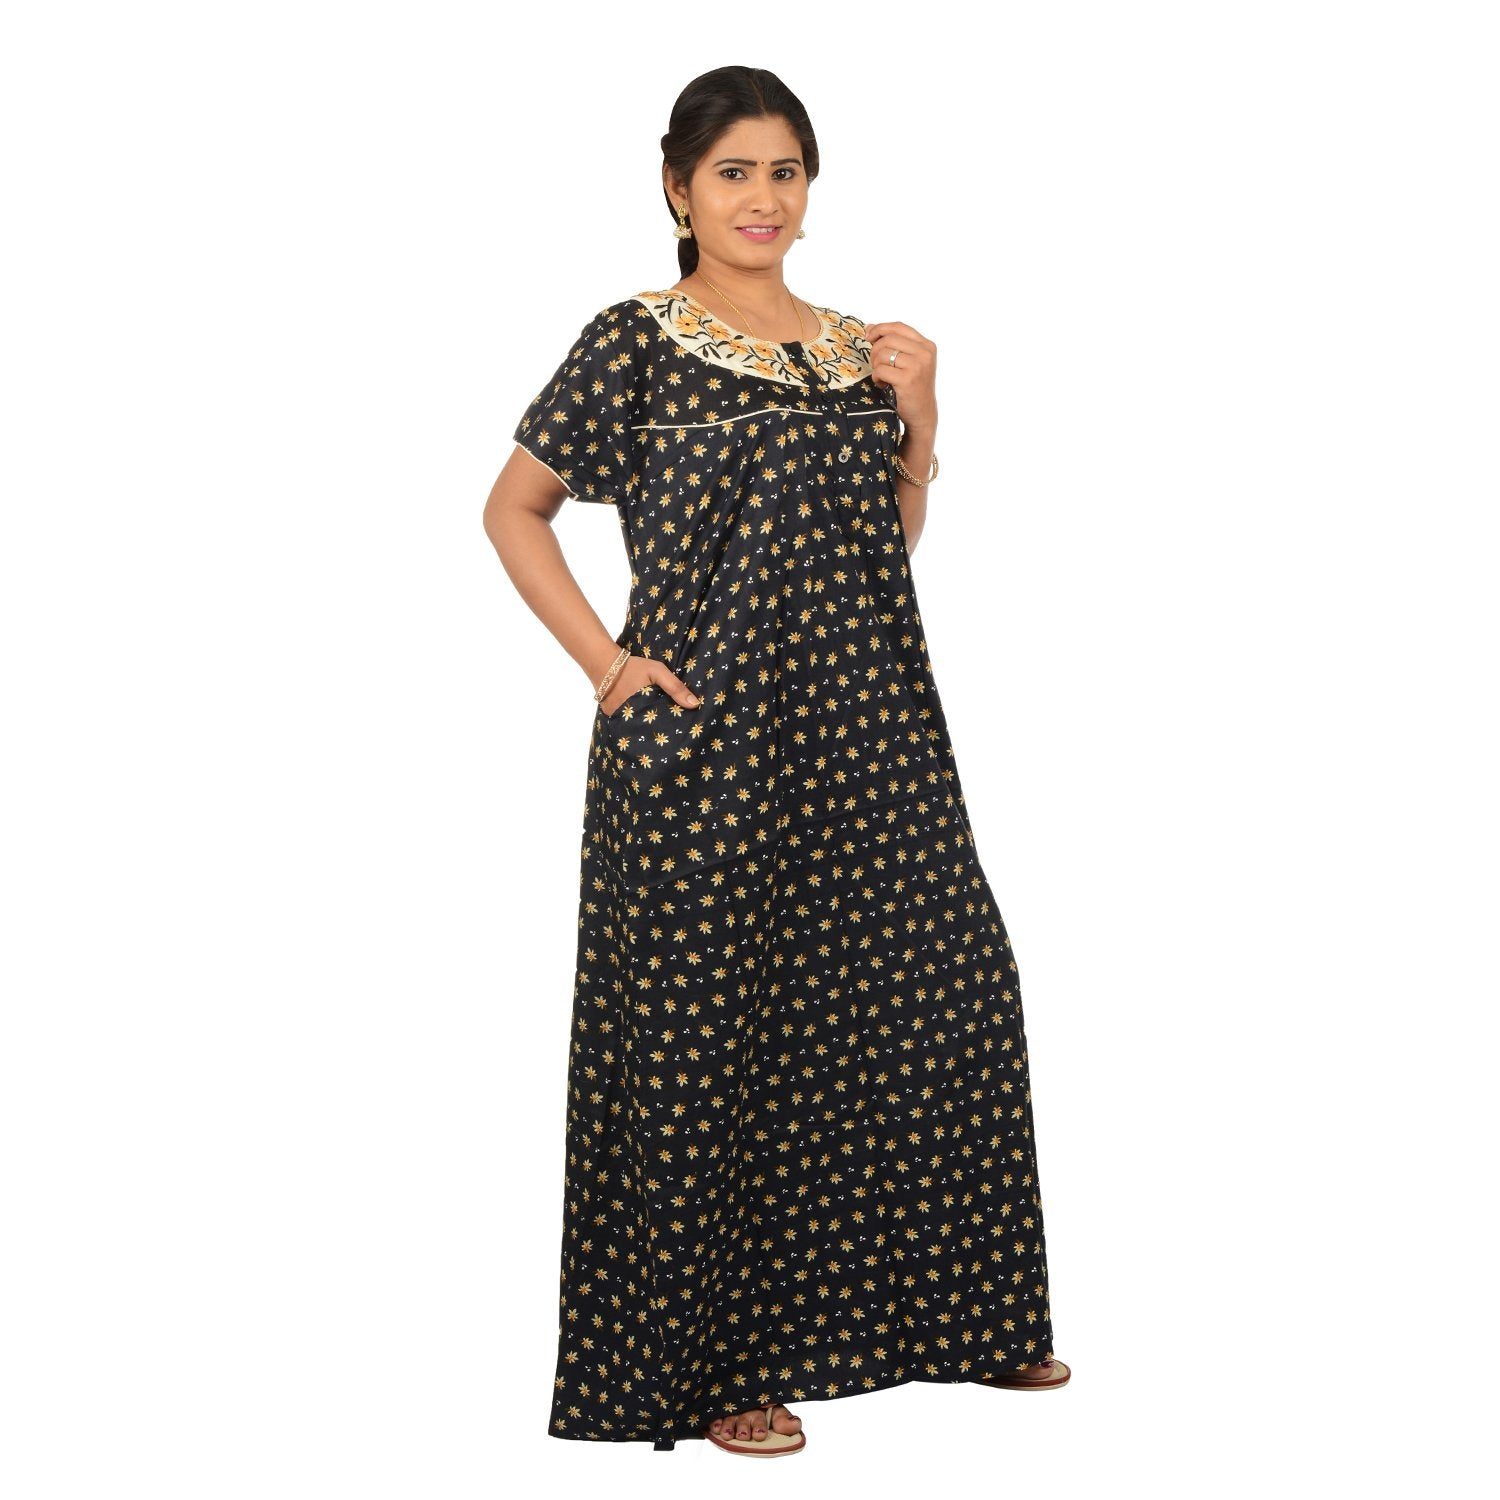 Embroided Floral Nighty For Women - Black